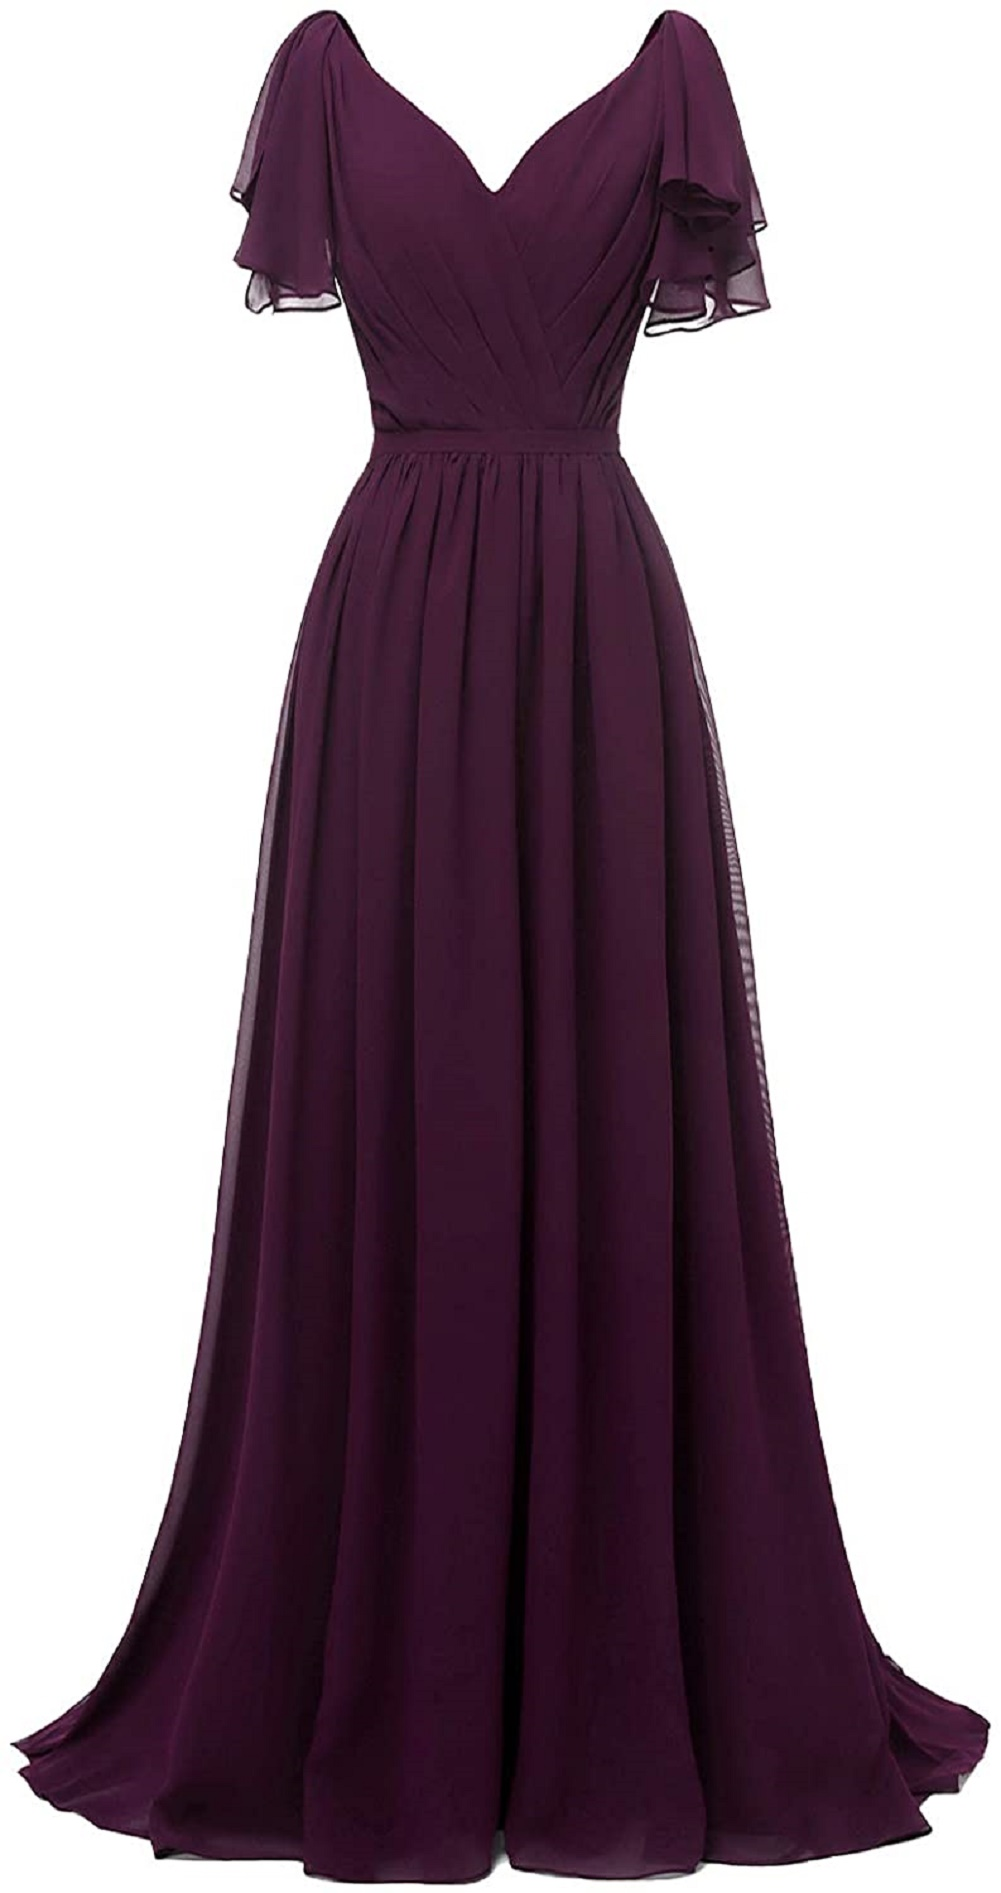 Chiffon Ruffle Sleeve Bridesmaid Dress for Women V Neck Long Wedding Guest Gown Evening Dress Prom Gown Elegant Special Occasion Dress